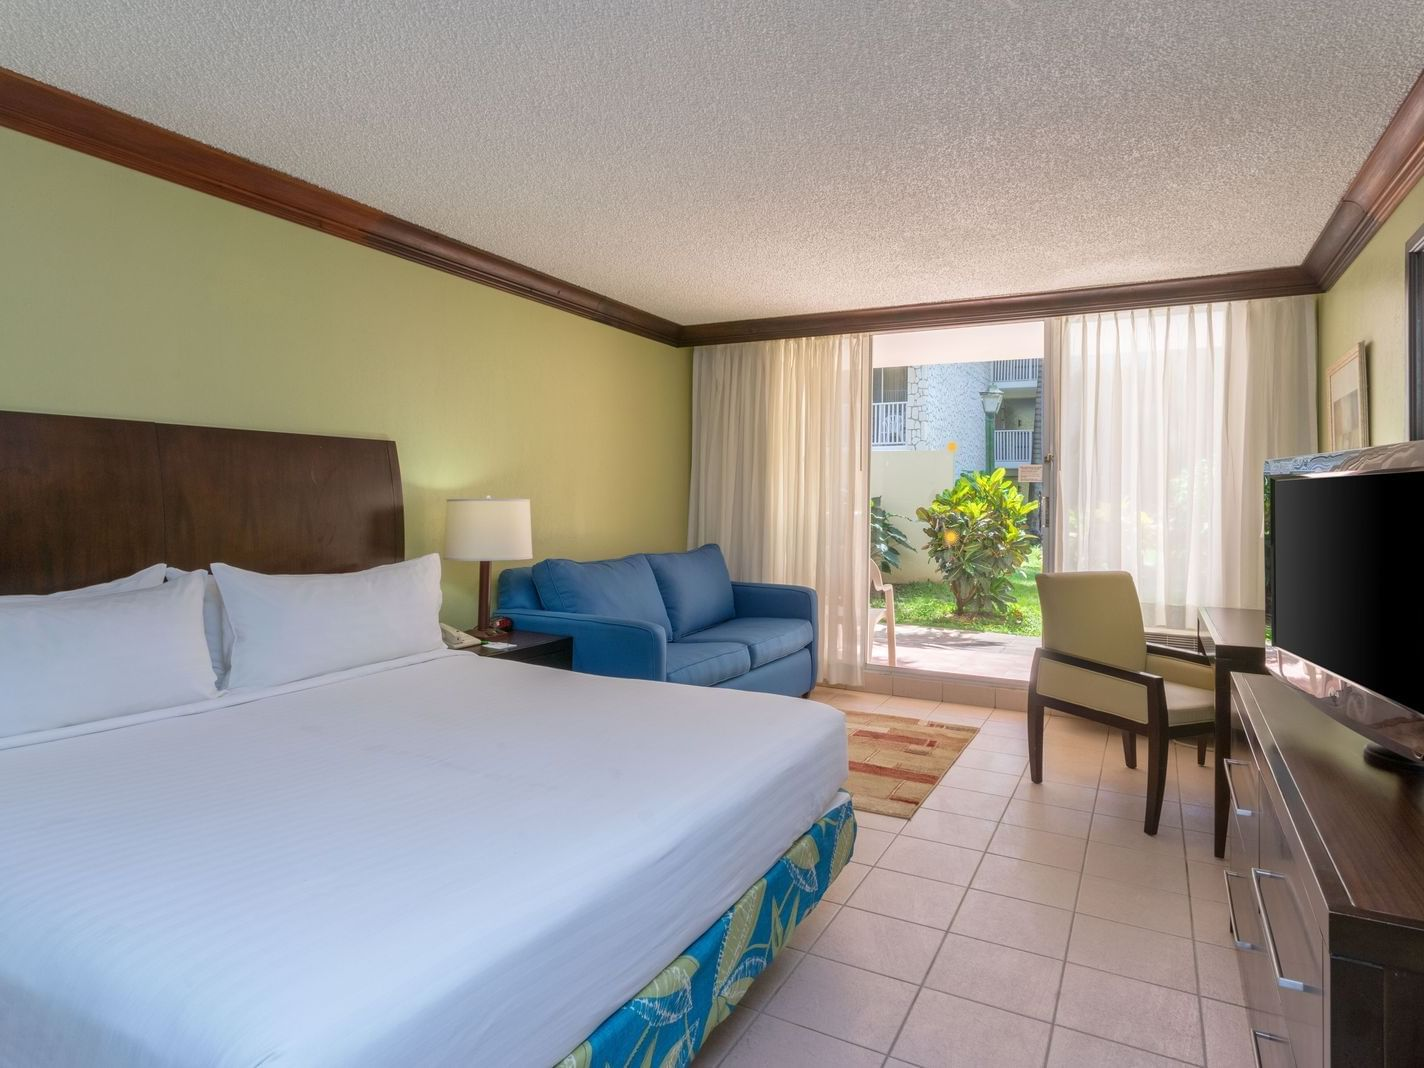 Bed & furniture of Deluxe room at Holiday Inn Montego Bay